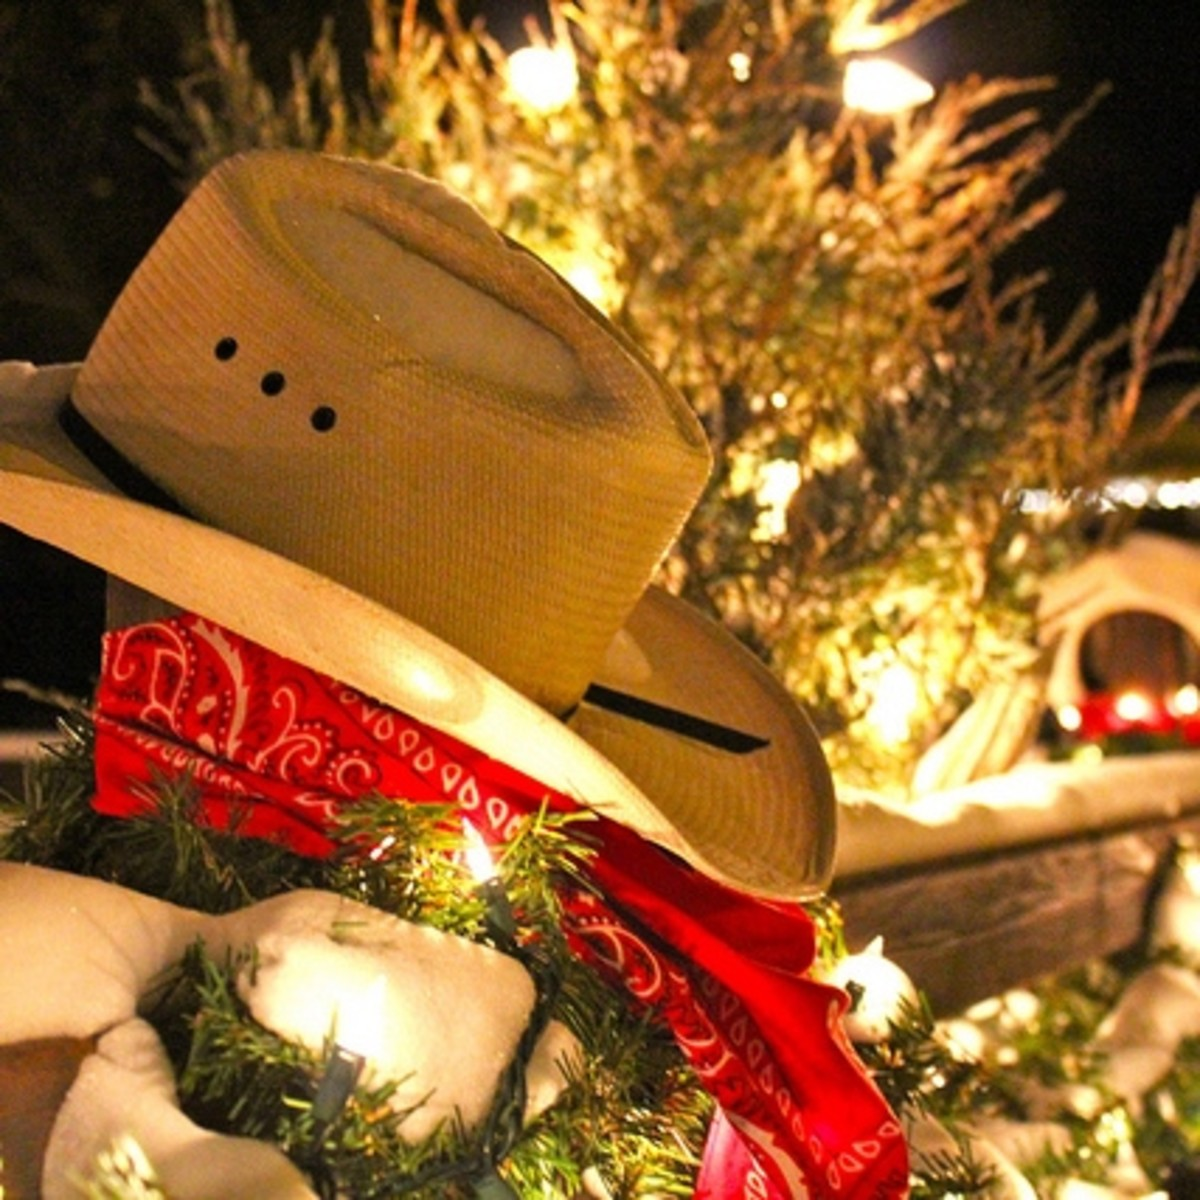 Take a listen to this festive country playlist to get into the holiday spirit.